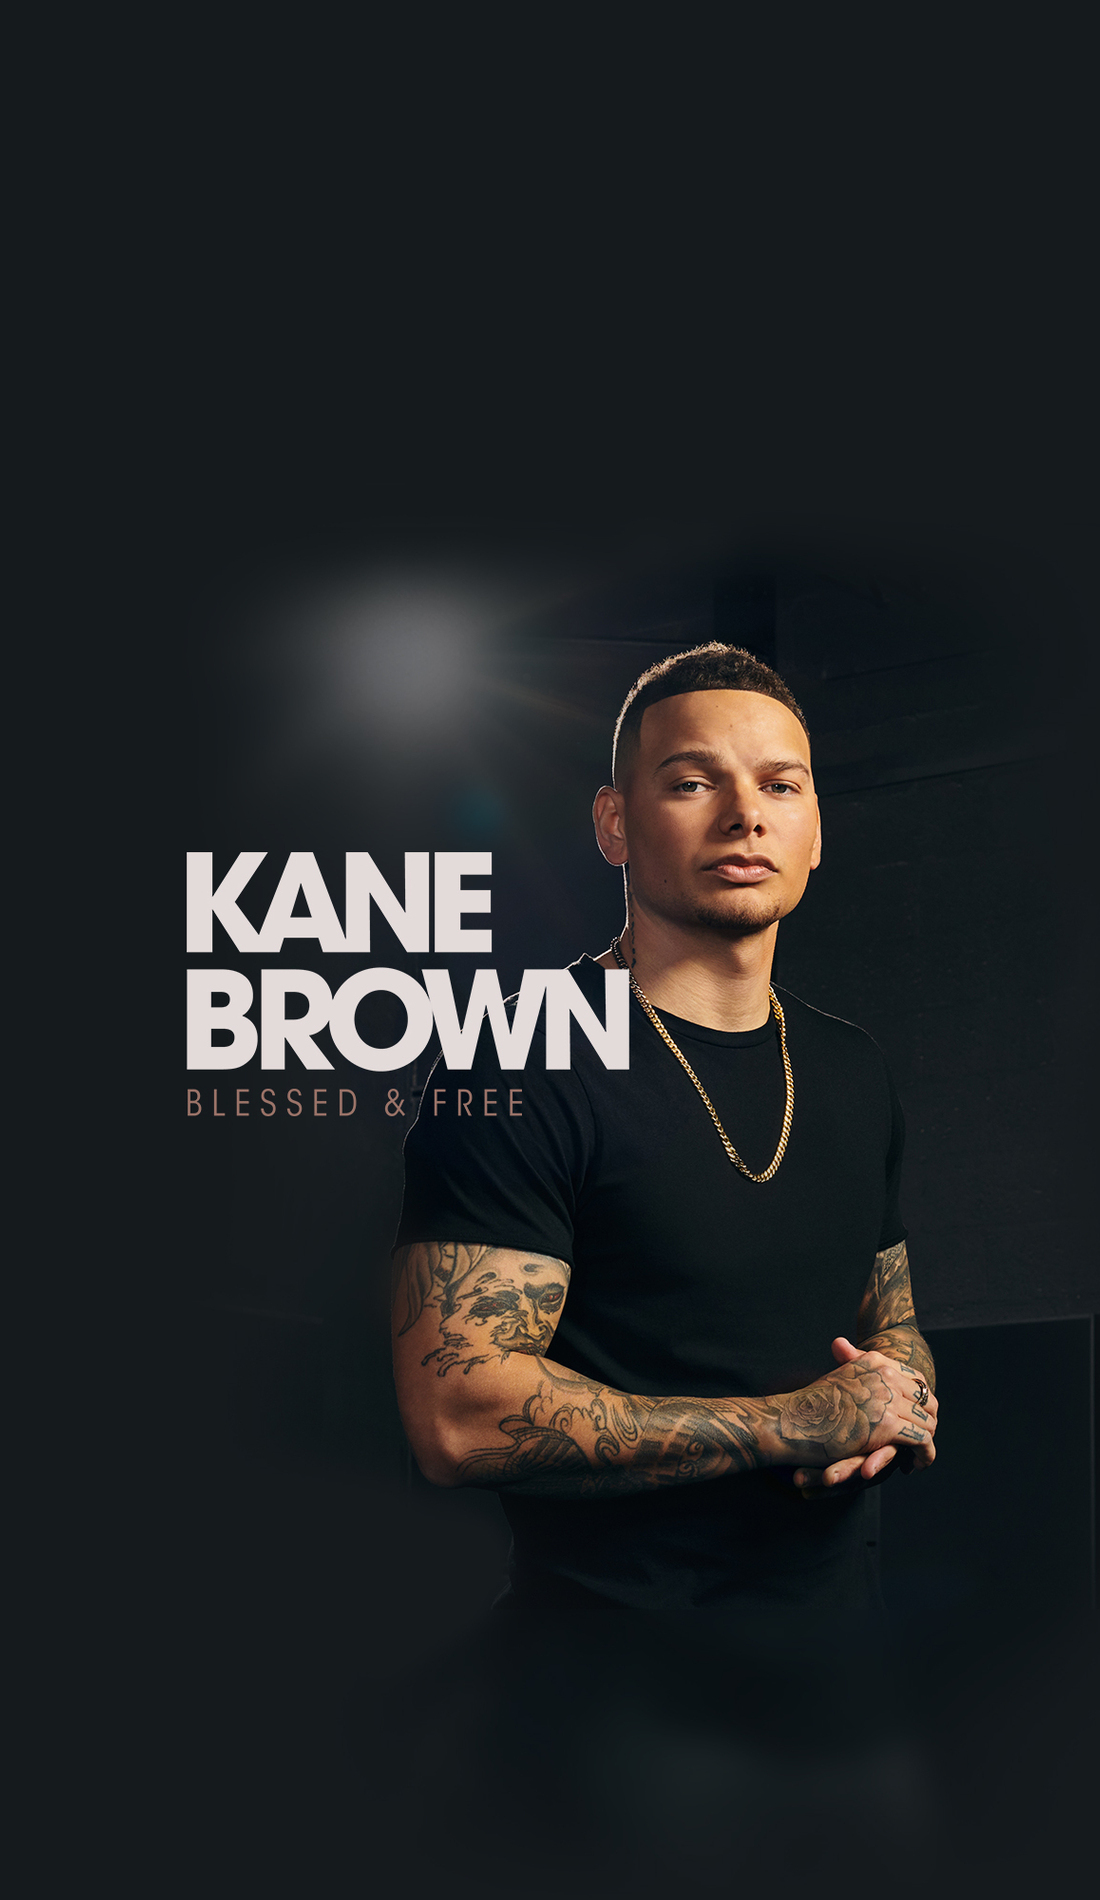 A Kane Brown live event